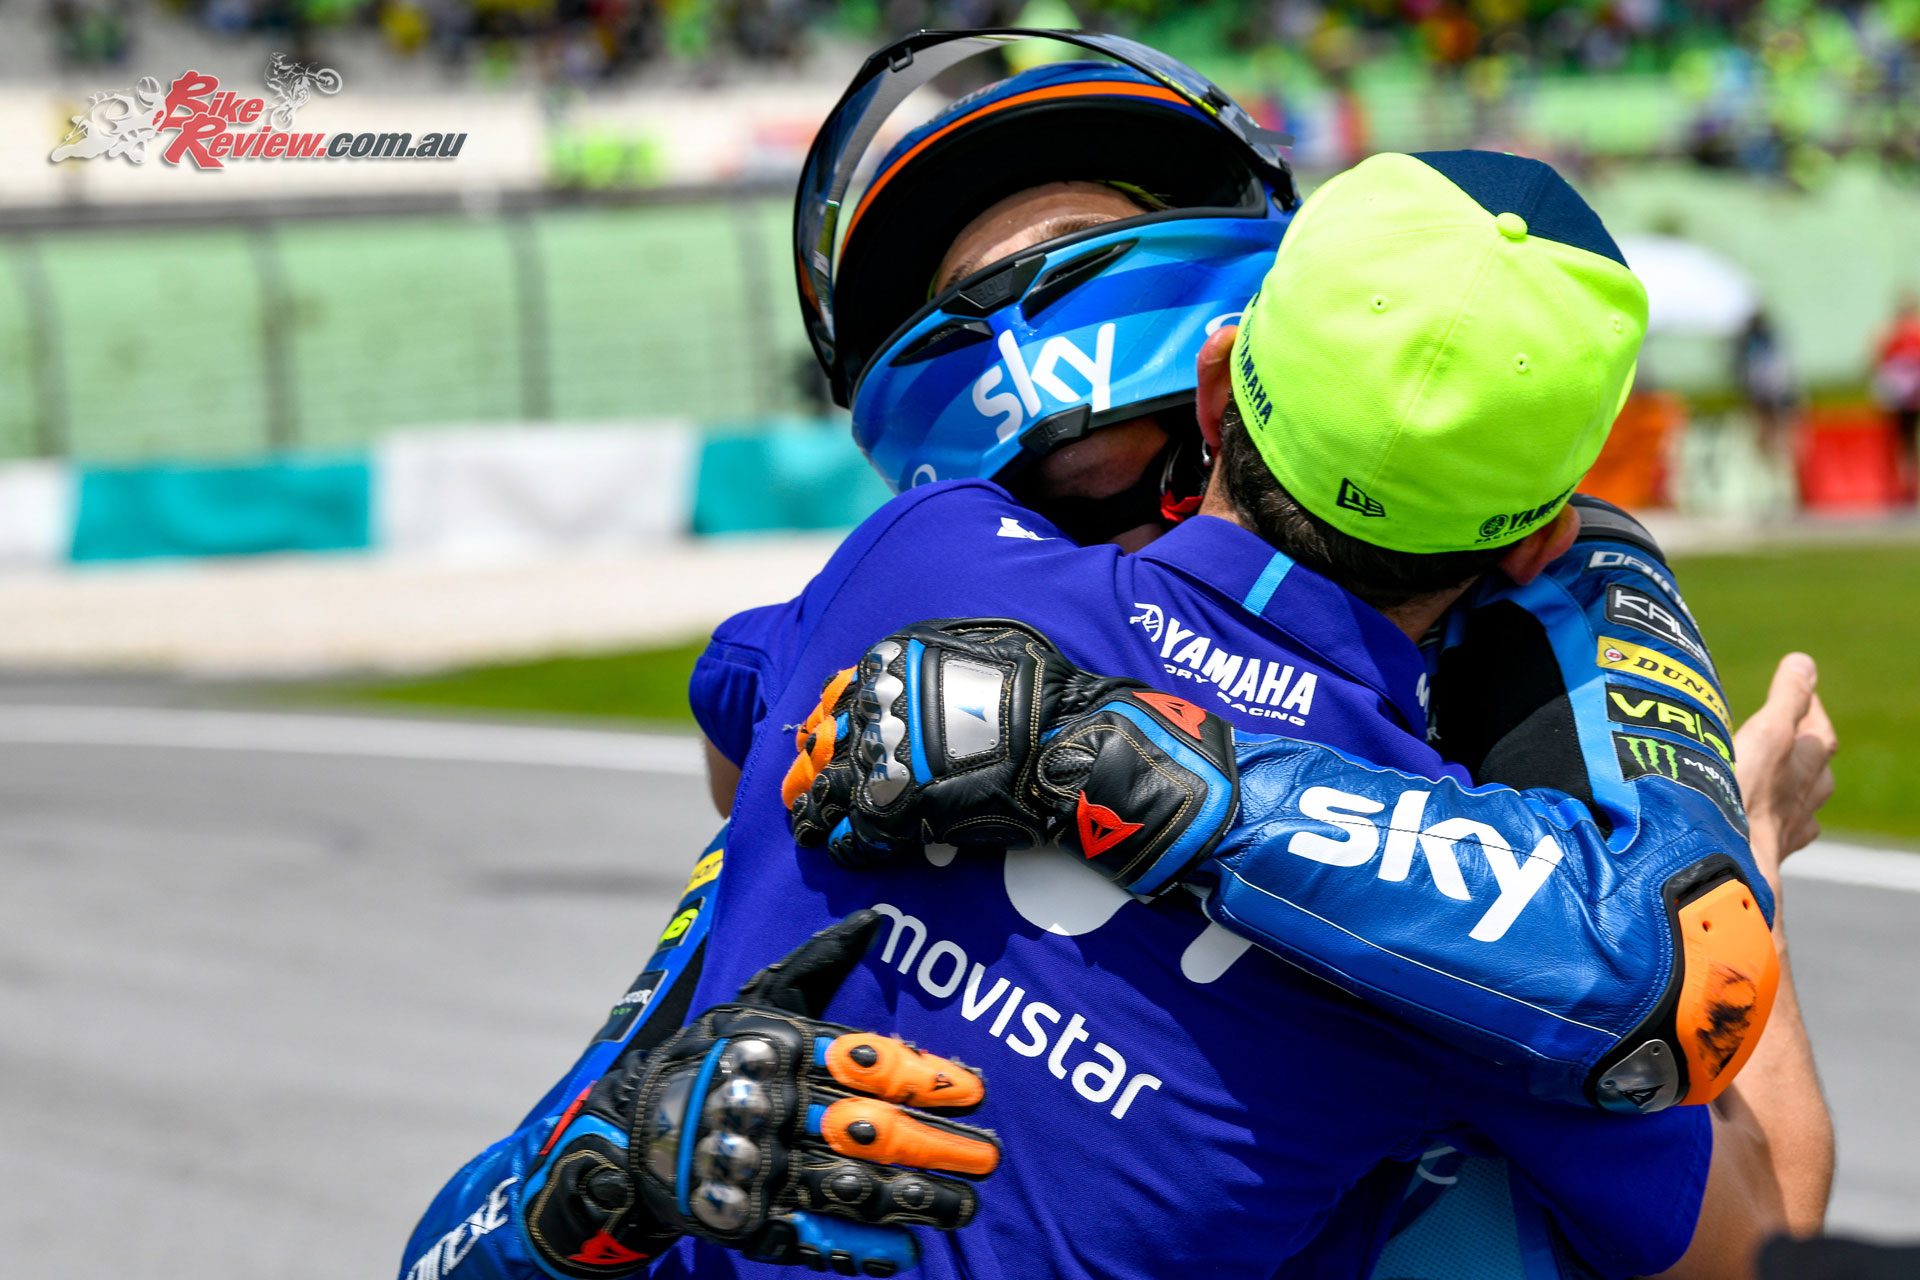 Luca Marini congratulated by Rossi